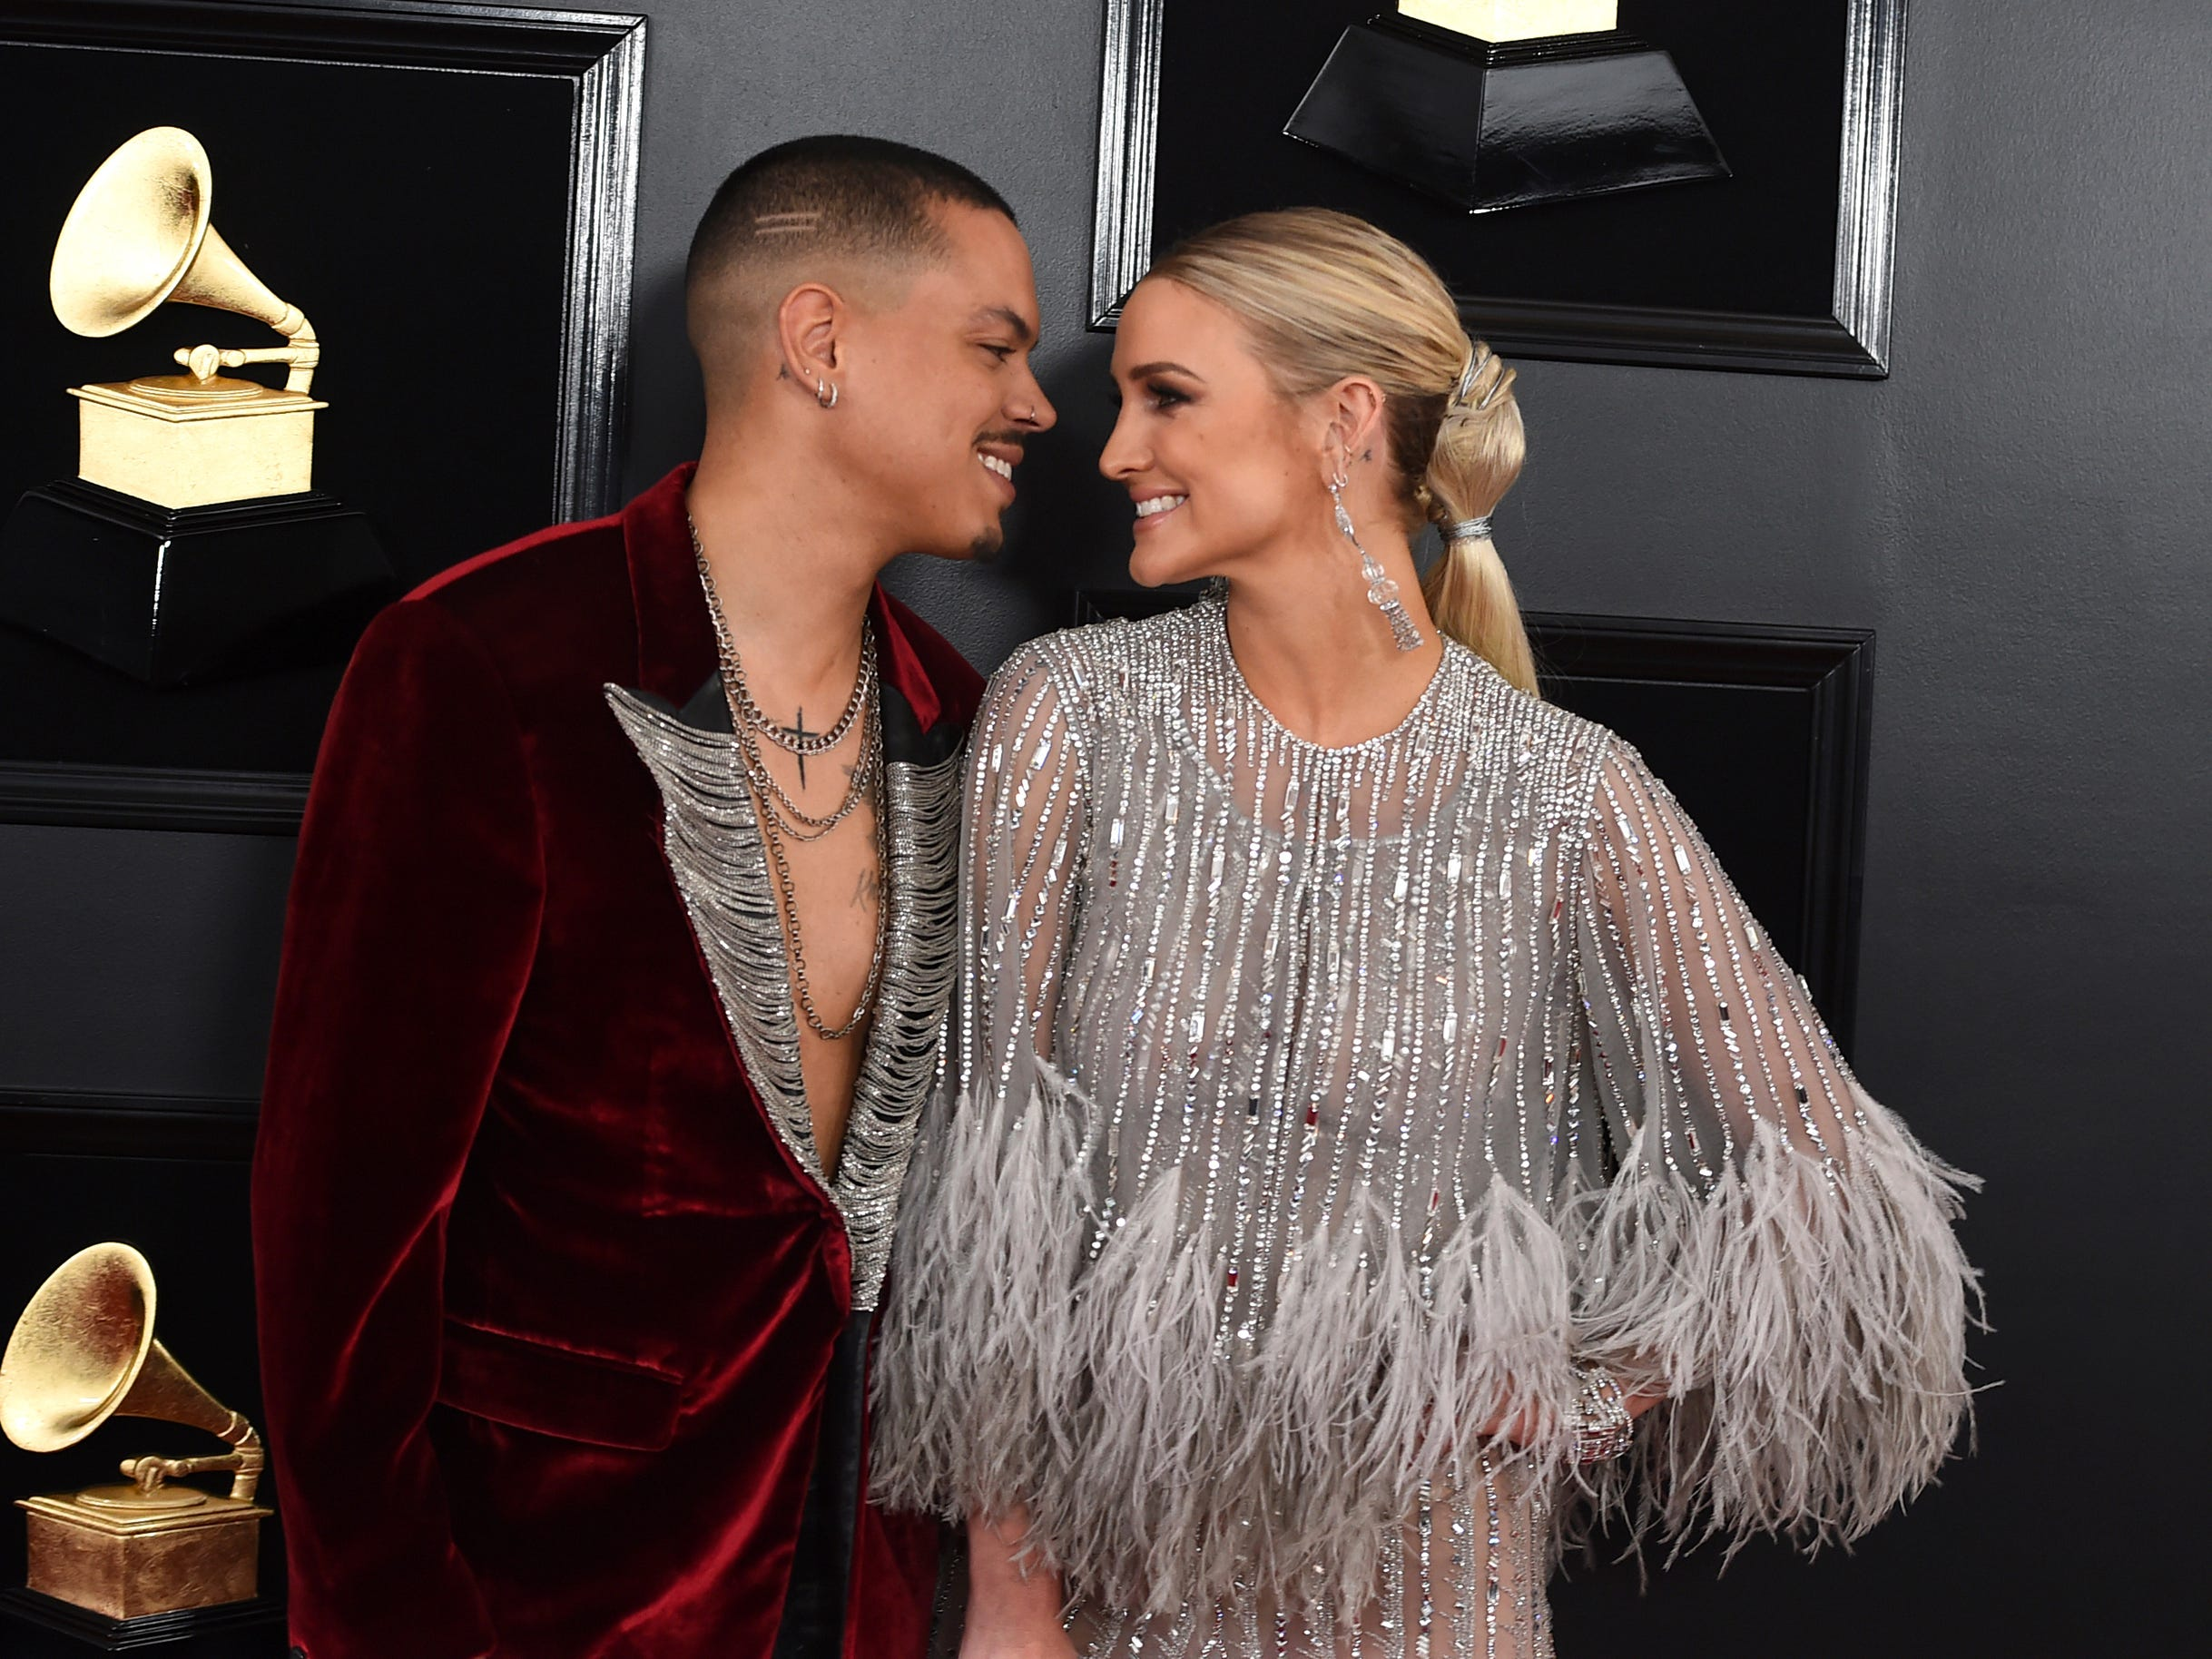 Evan Ross, left, and Ashlee Simpson arrive at the 61st annual Grammy Awards at the Staples Center on Sunday, Feb. 10, 2019, in Los Angeles.